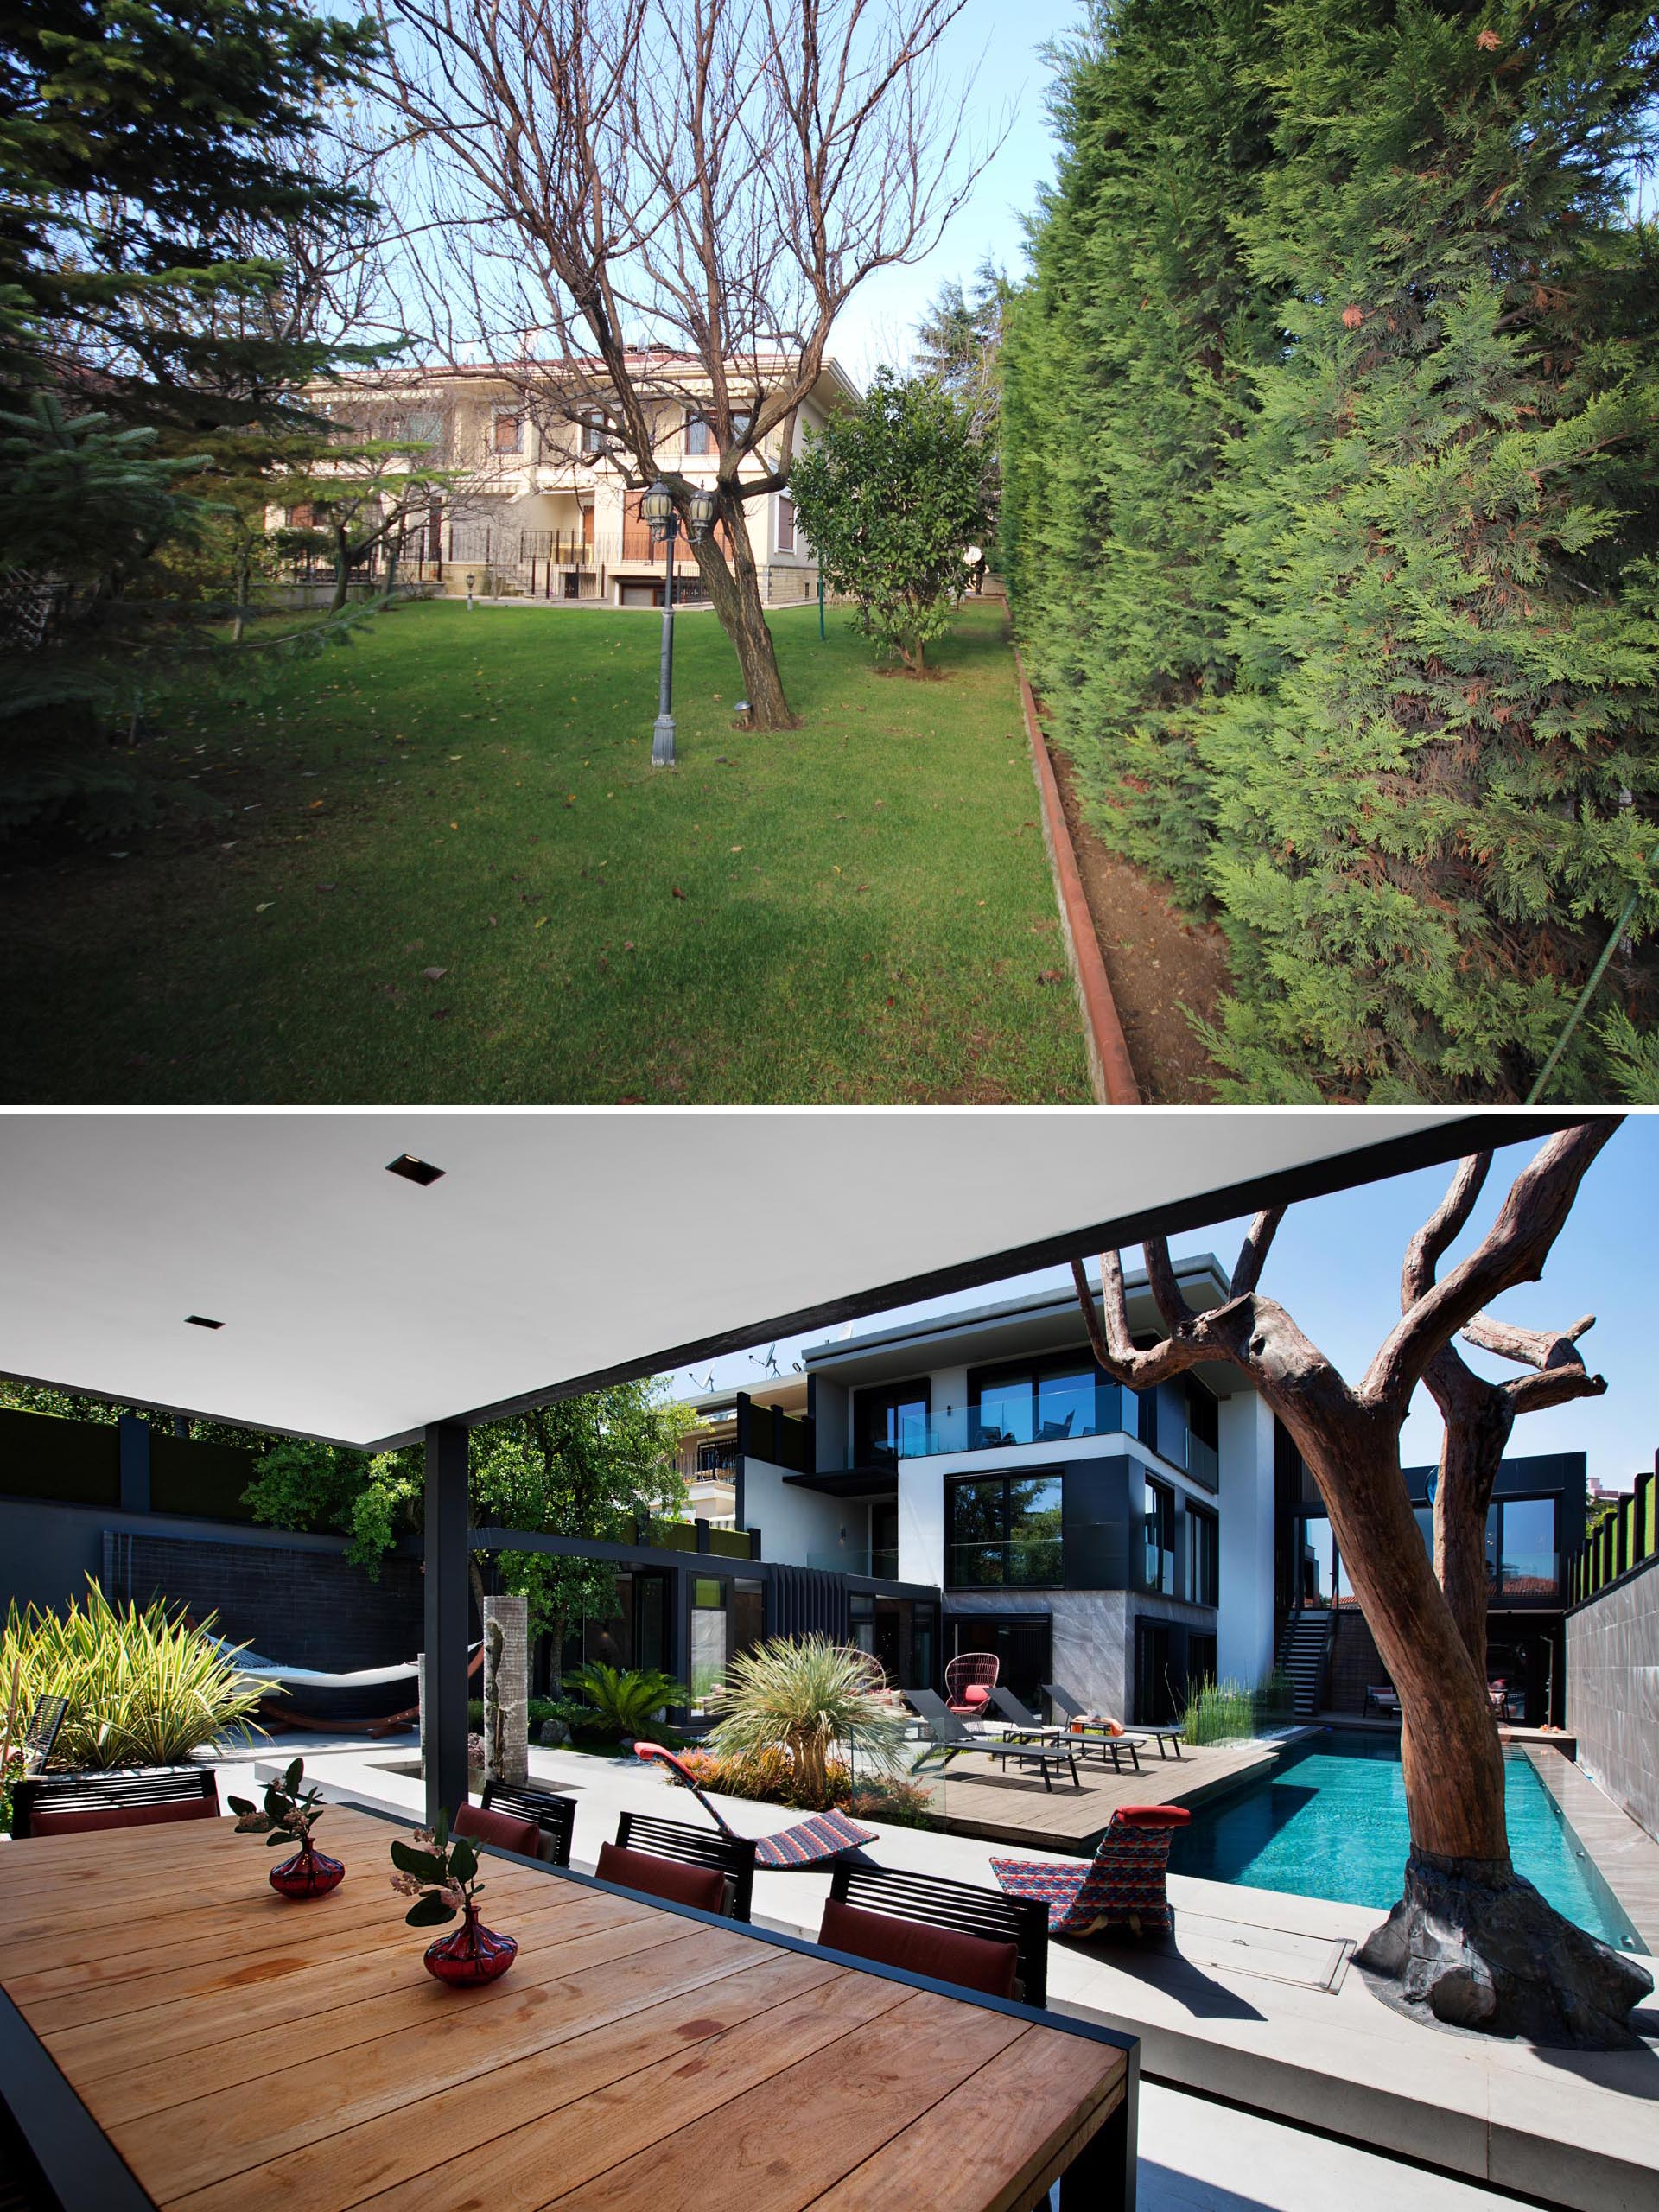 A yard renovation with a swimming pool, sunbathing deck, outdoor lounge, and covered dining area.